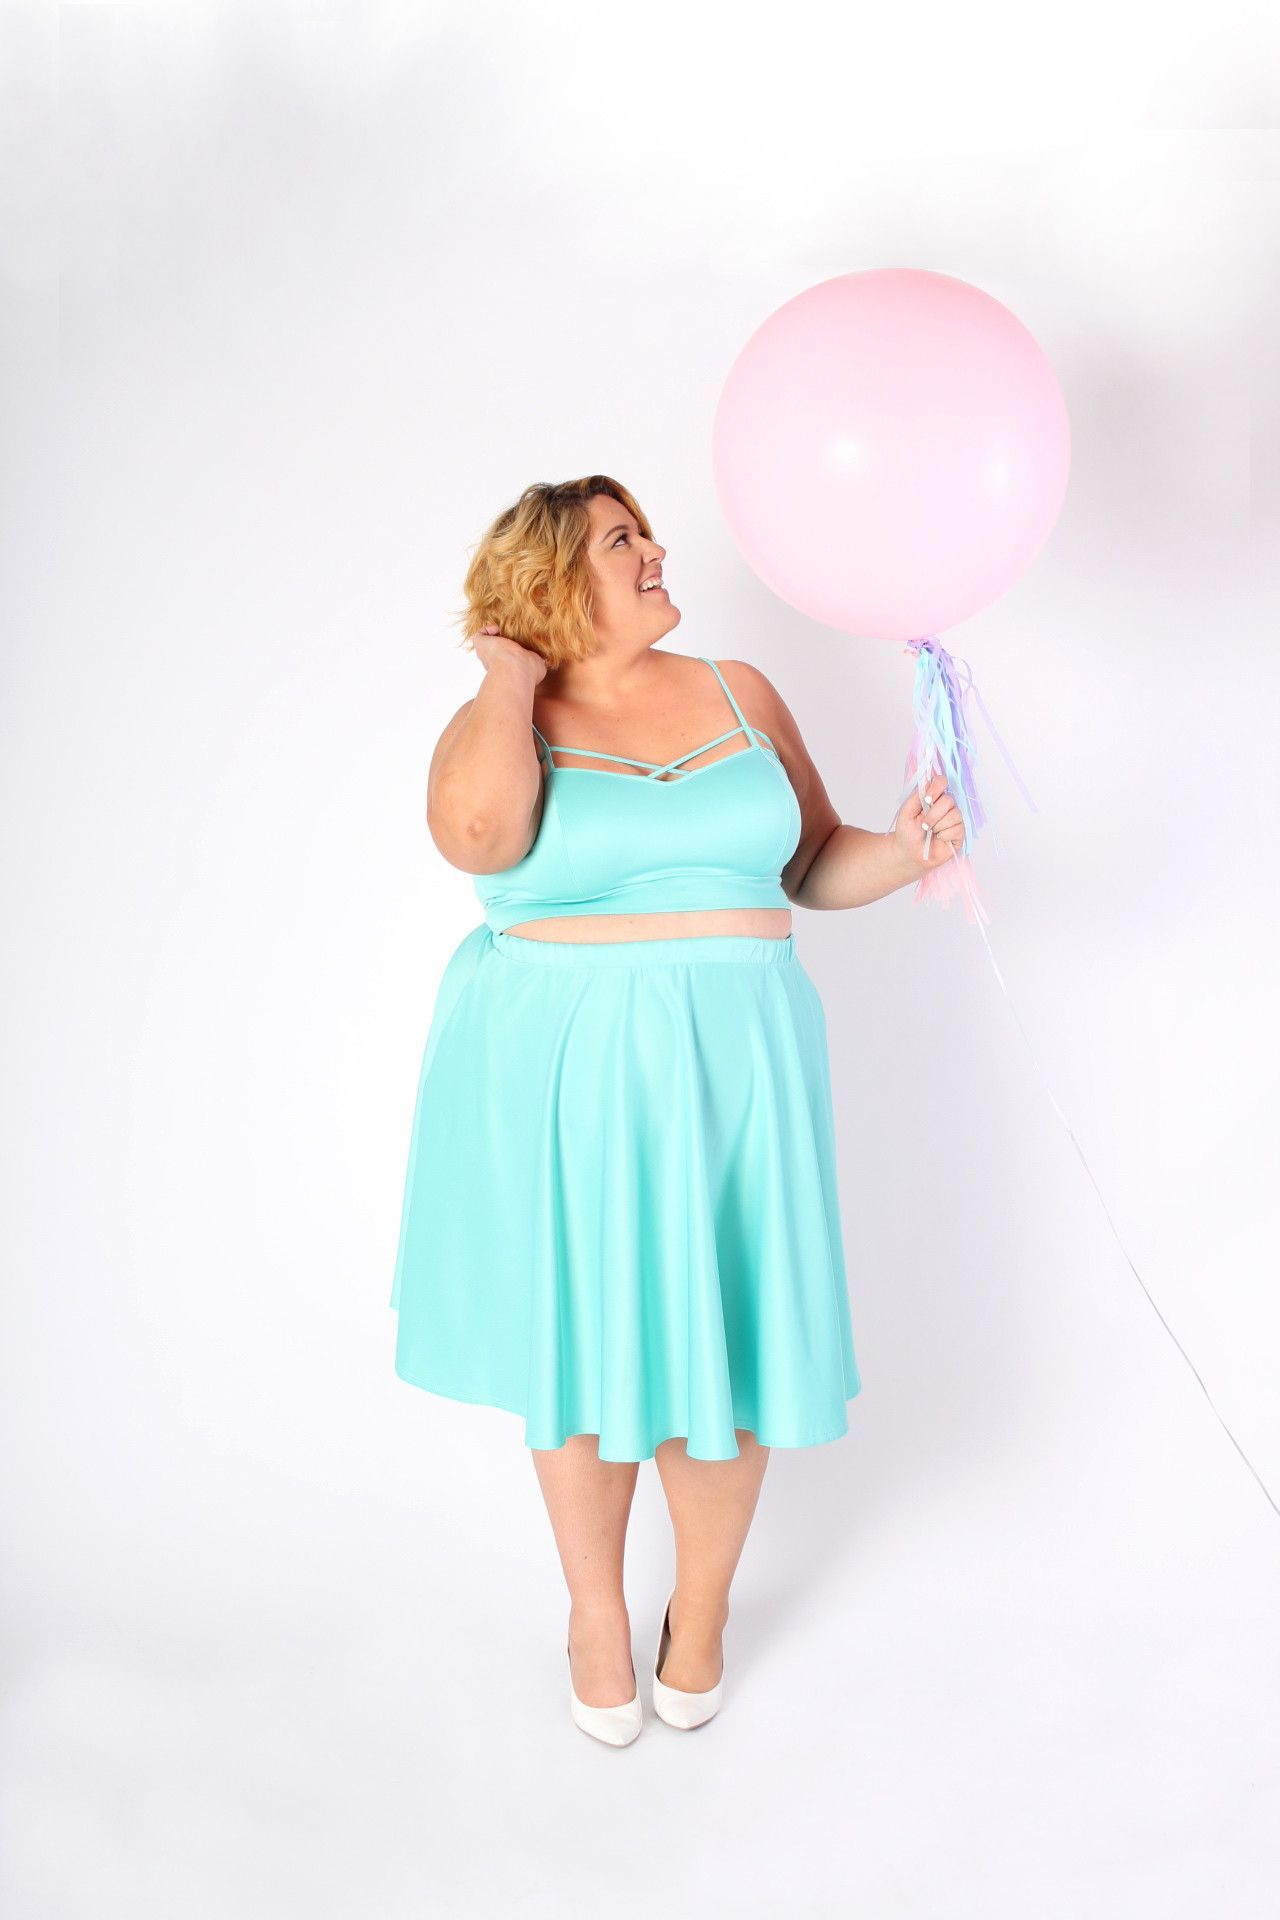 Plus Size Clothing for Women - Jessica Kane Mint Fresh Crop Top ...